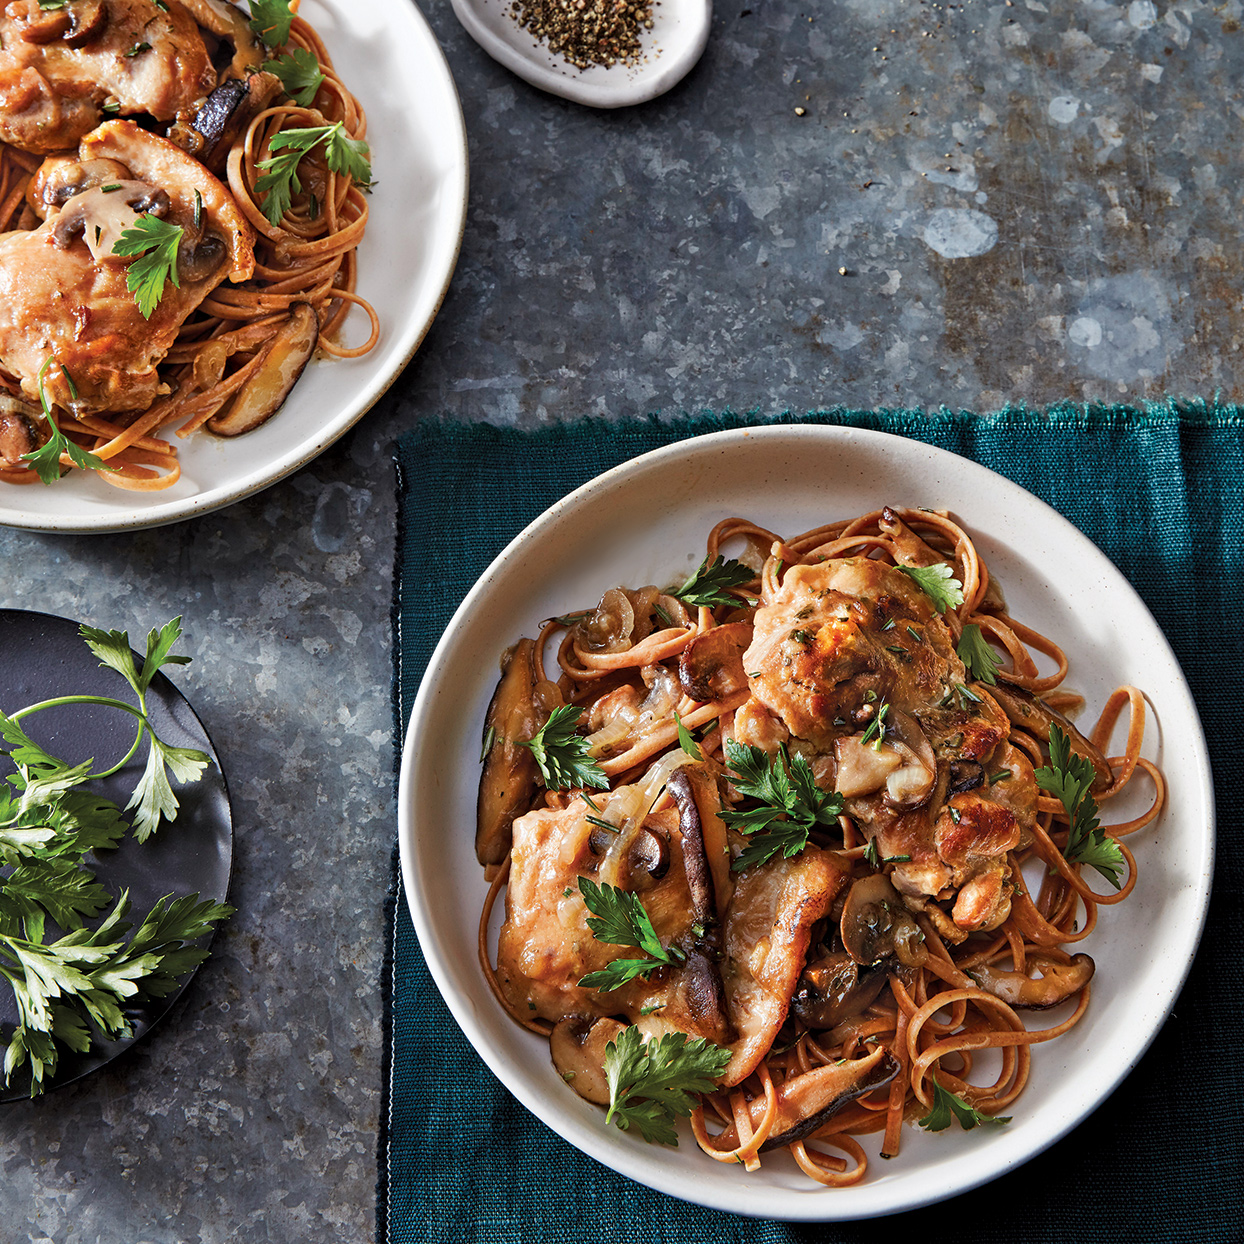 Slow-Cooker Chicken with Rosemary & Mushrooms over Linguine